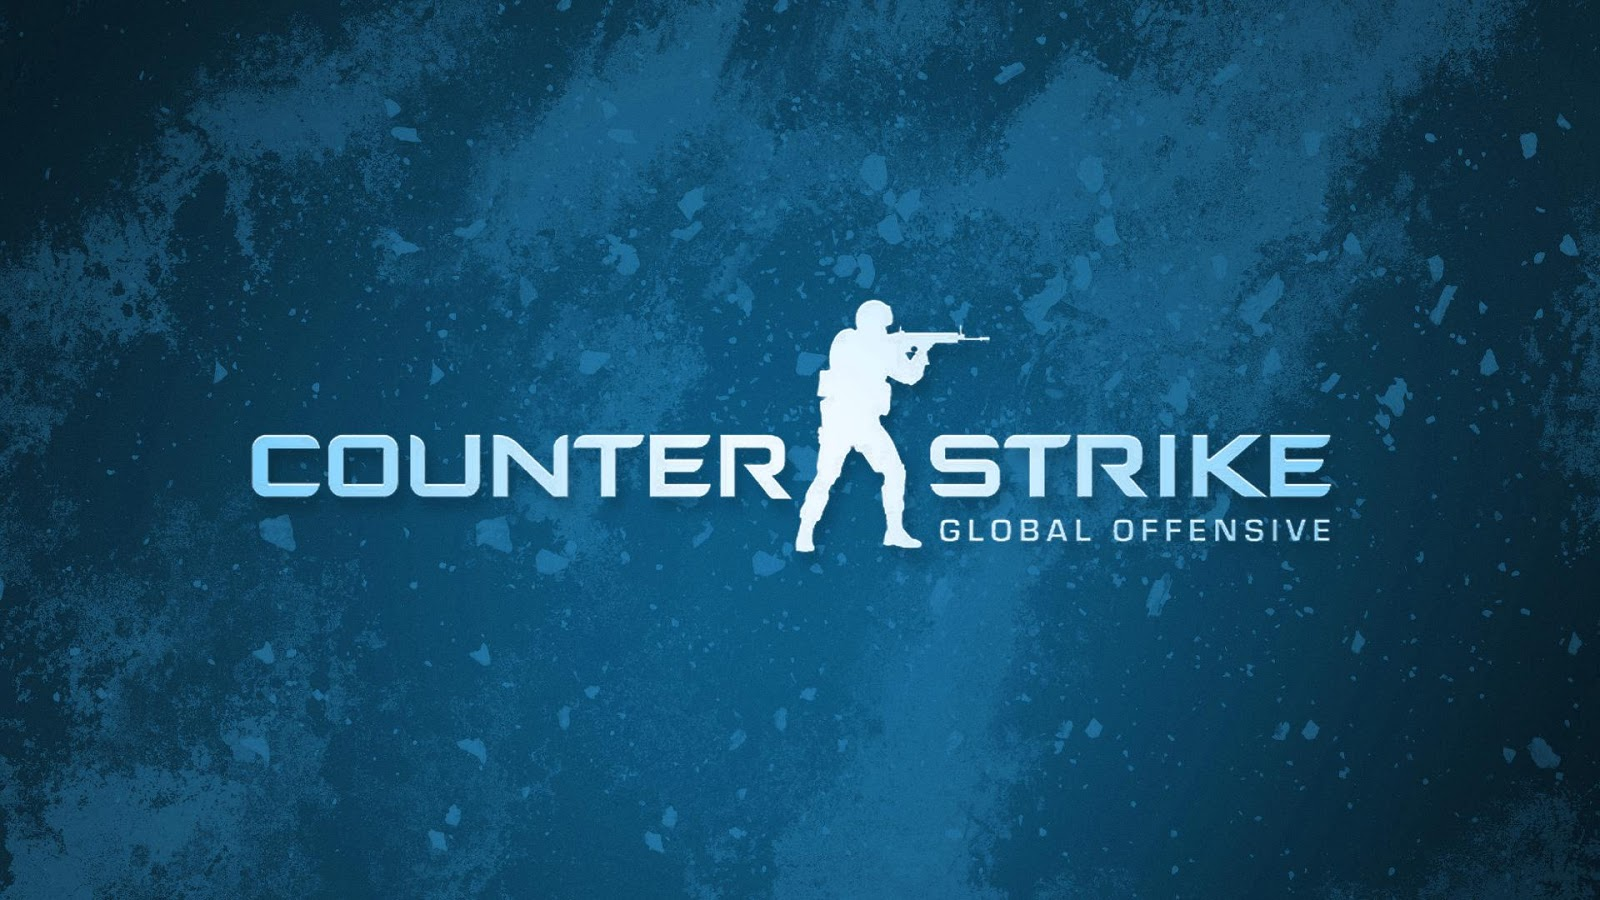 101 cs:go hd wallpapers: cool gaming backgrounds